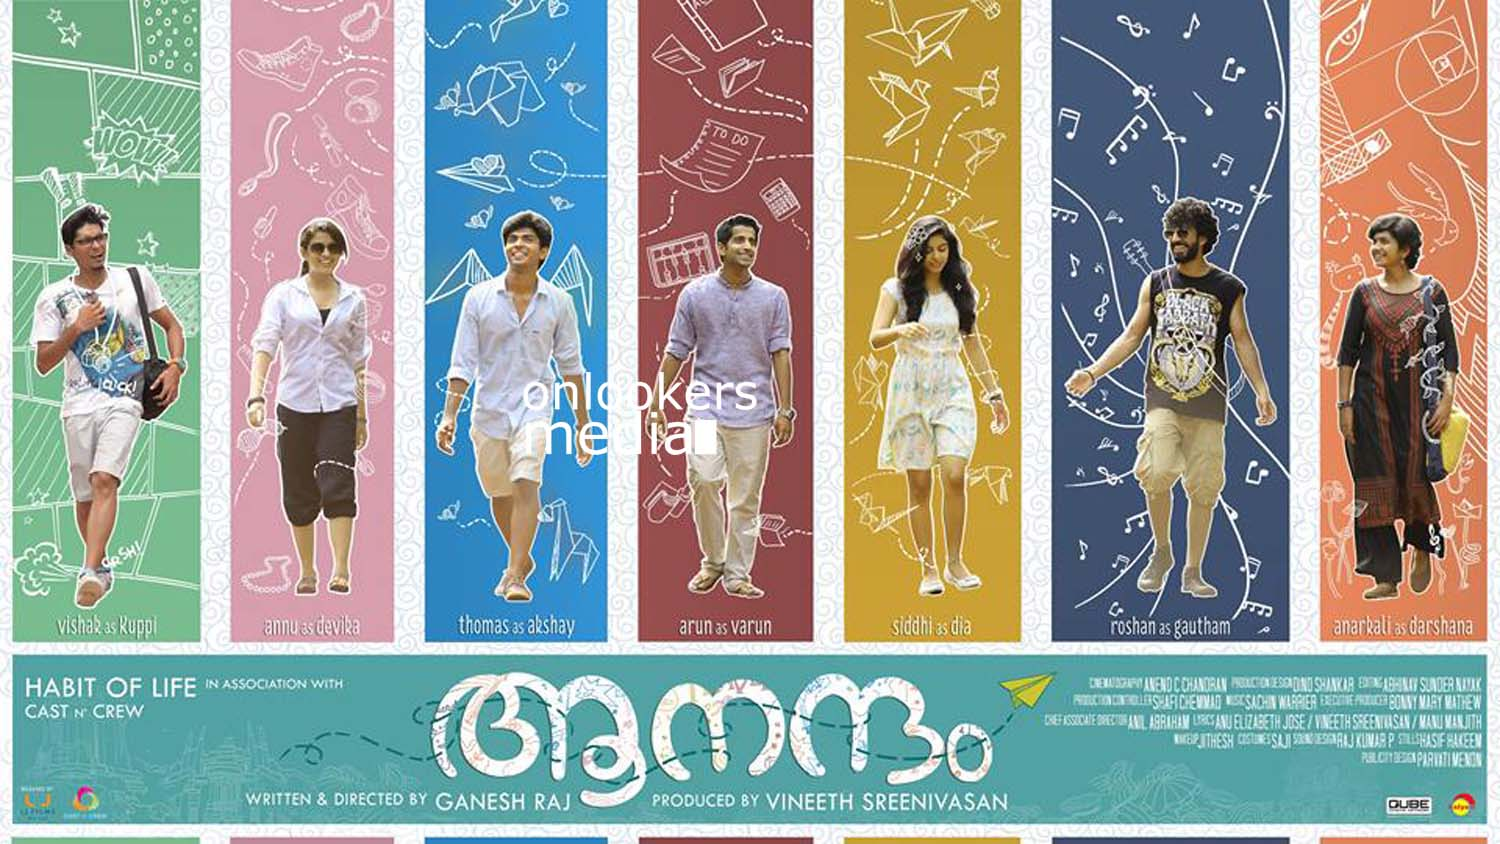 http://onlookersmedia.in/wp-content/uploads/2016/10/aanandam-poster-stills-images-photos-7.jpg